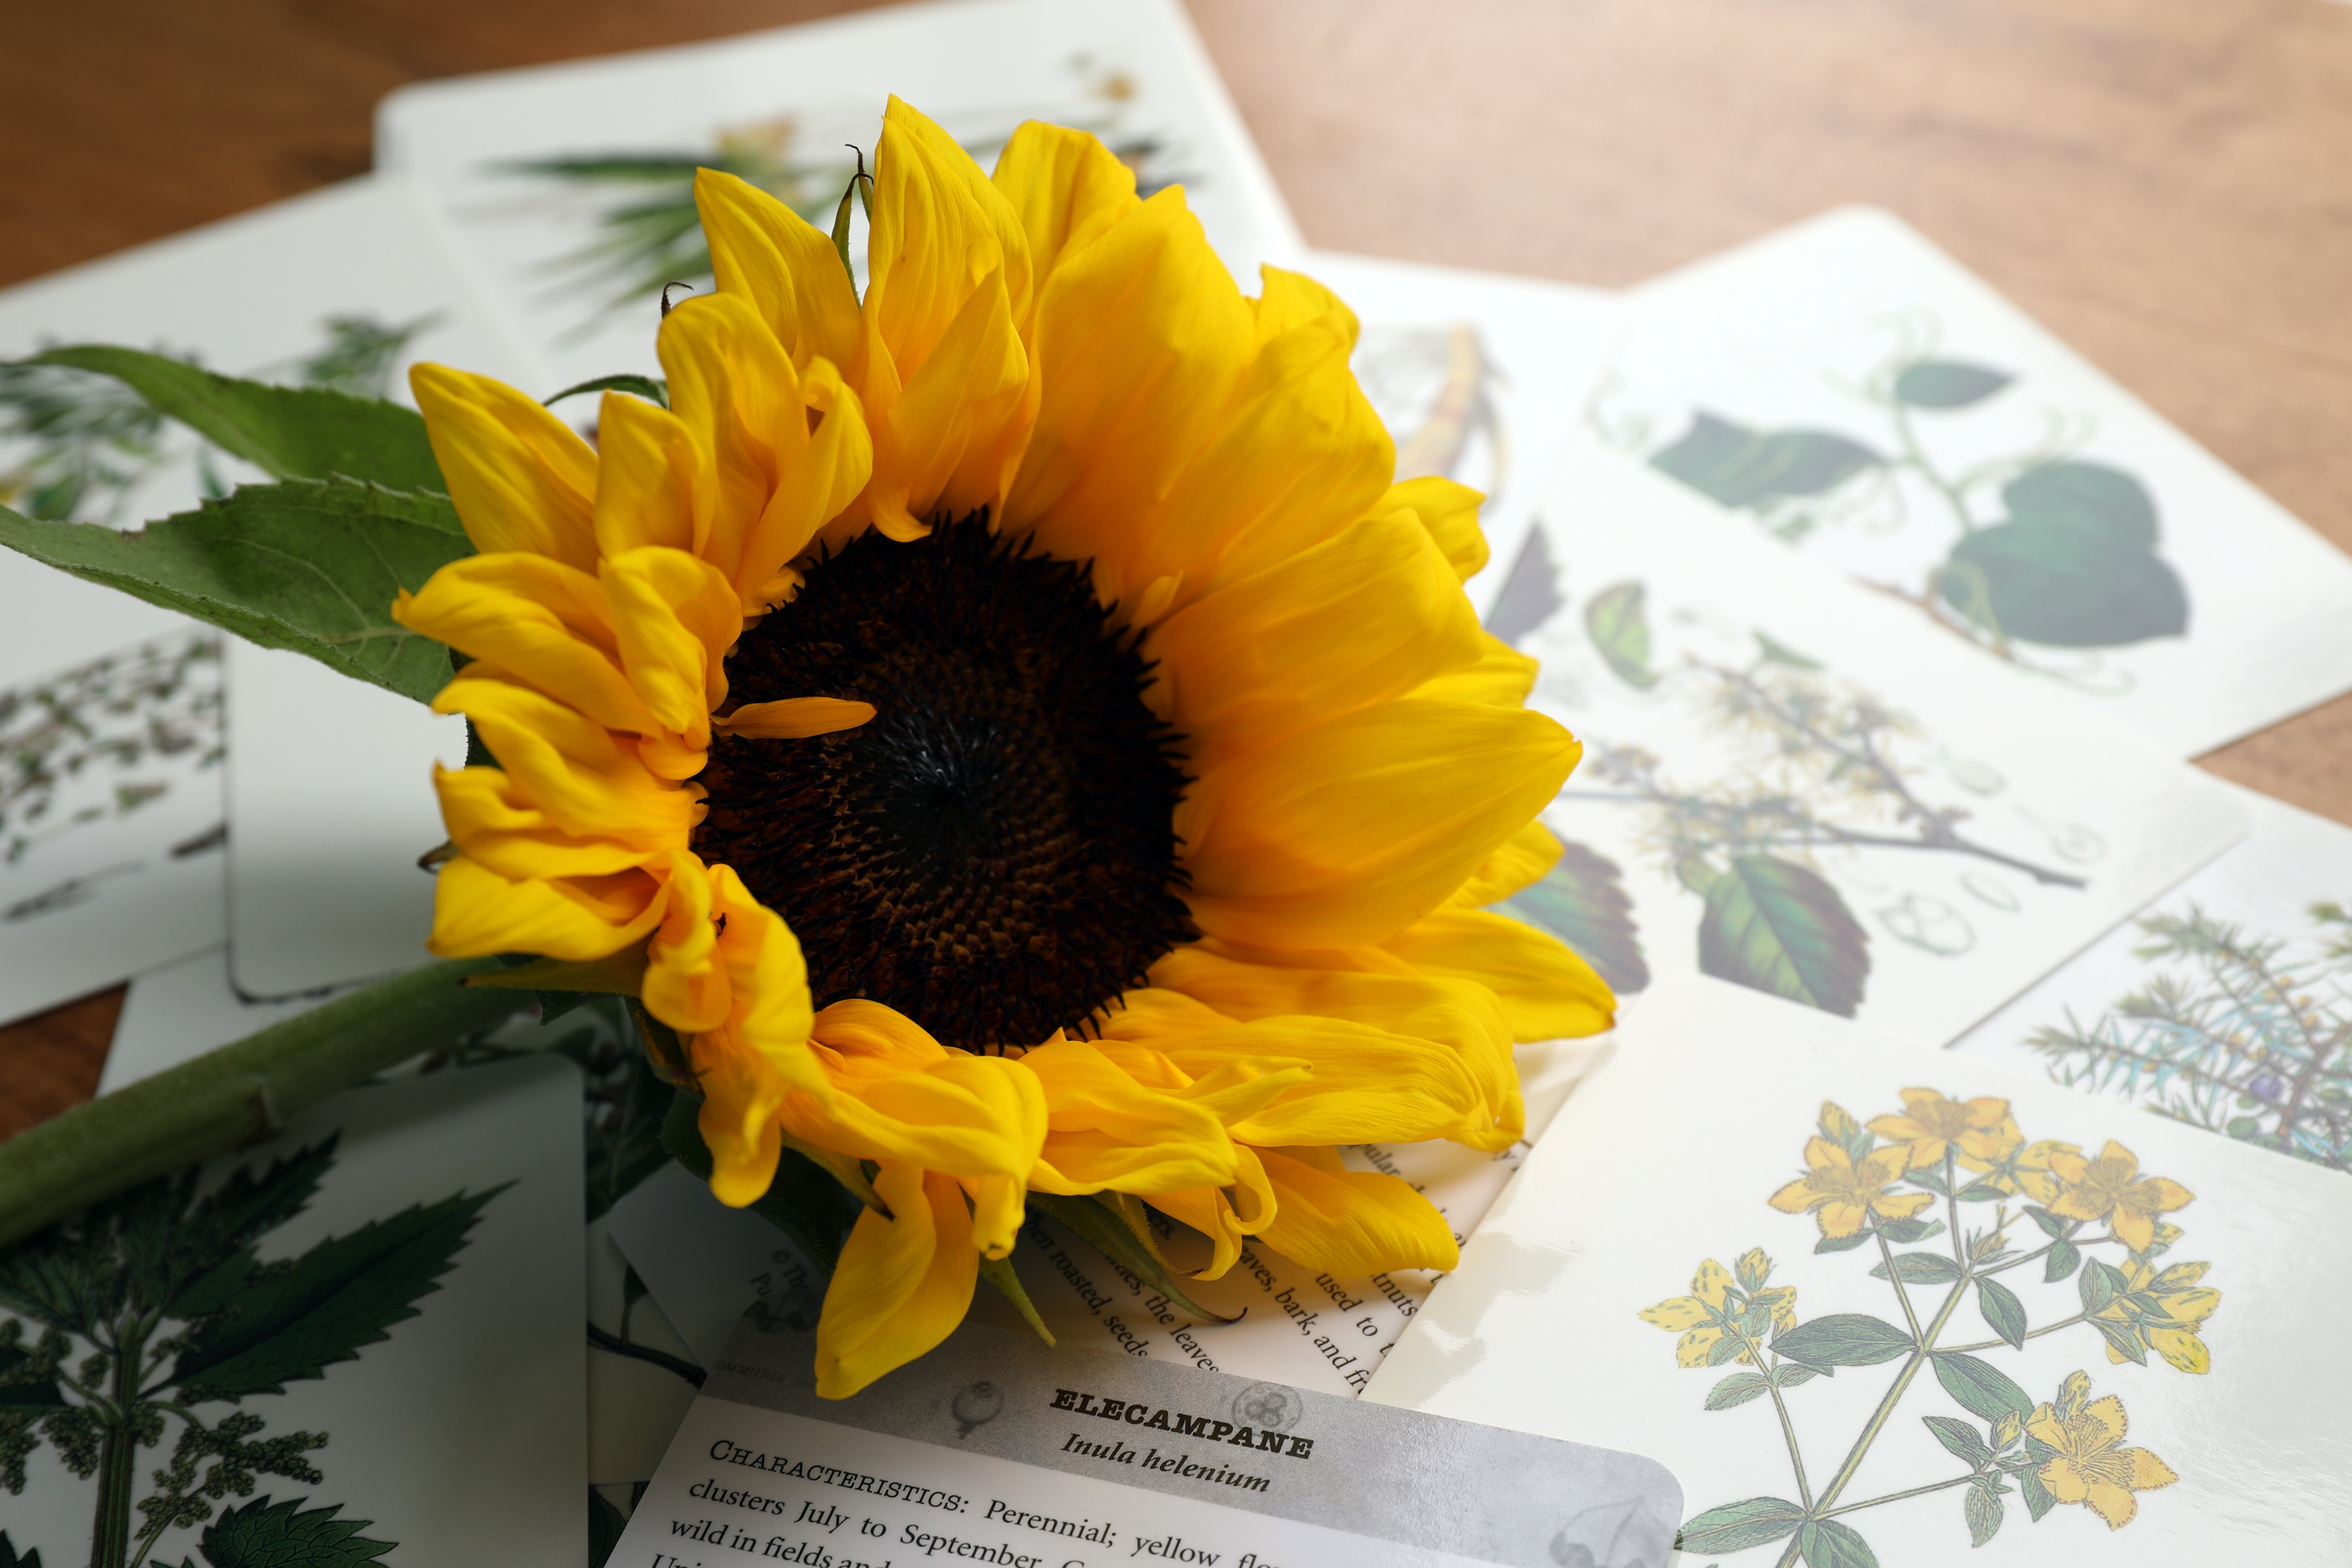 Sunflower laying on desk over lots of plant education cards